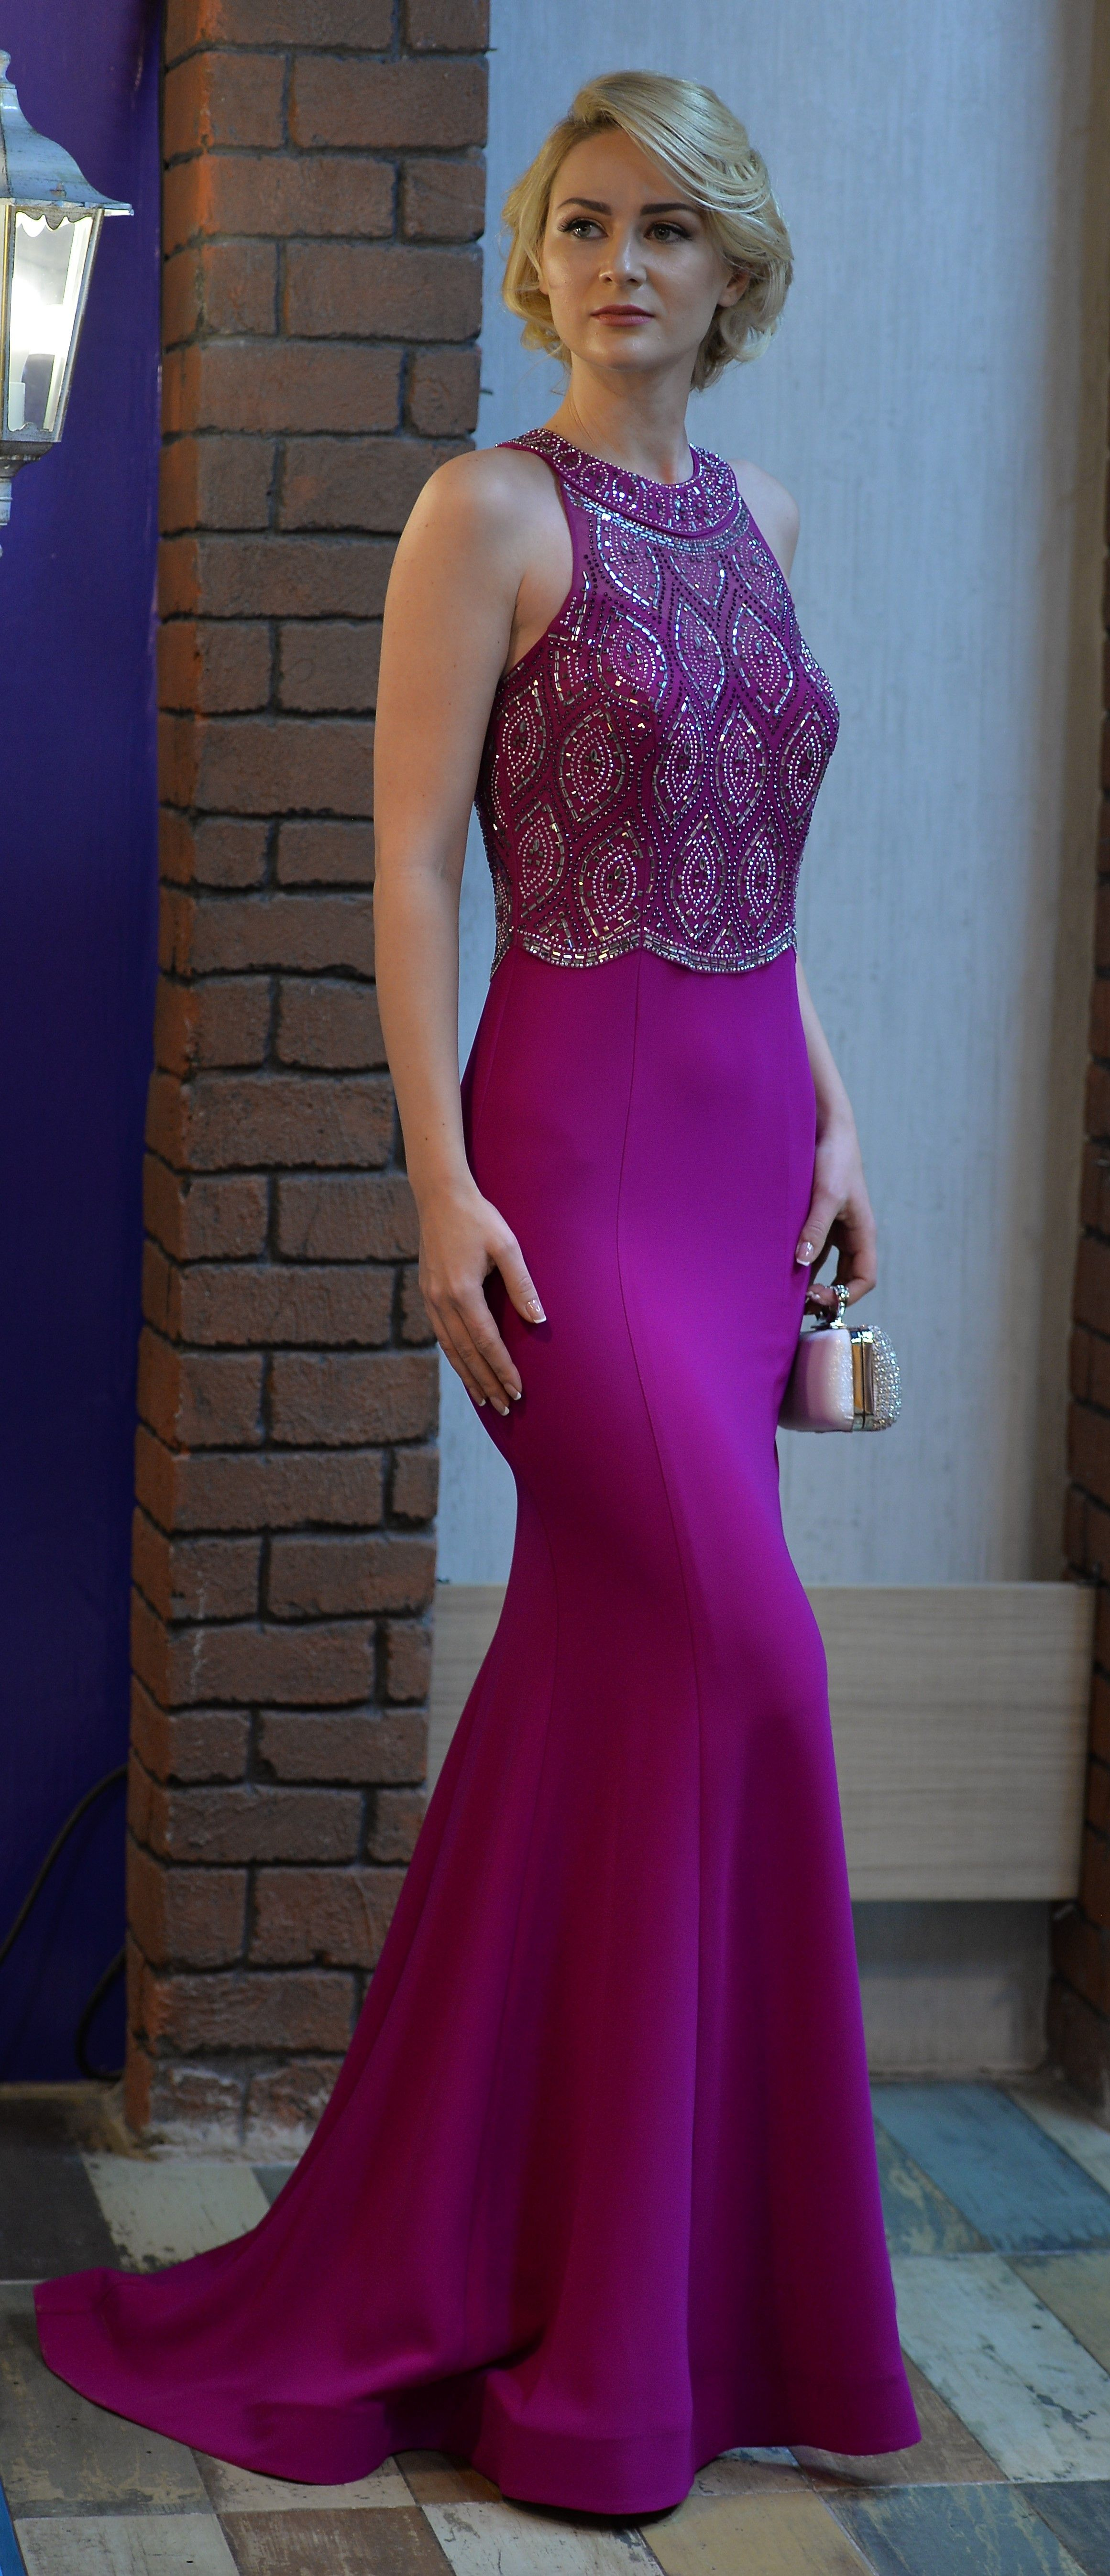 Designer prom gowns in purple,formal party dresses,mezuniyet ...